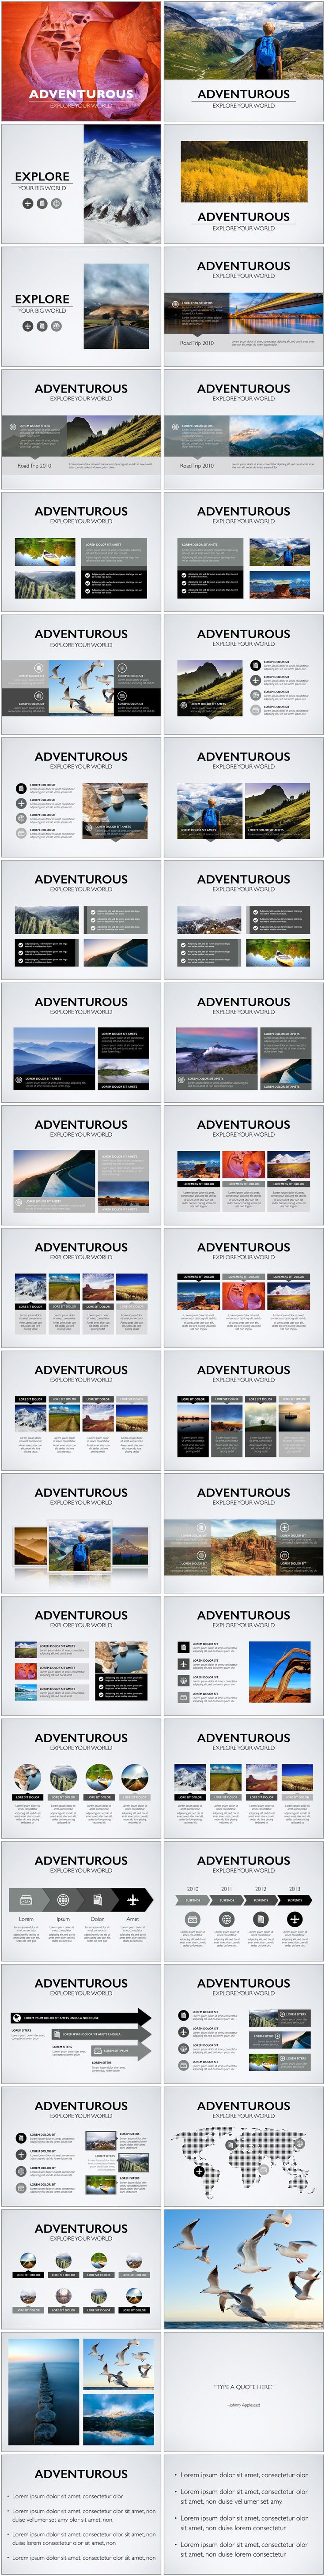 Adventurous Keynote Template - By Deeda Designs. Create an interactive presentation of all your adventures. Professionally designed keynote templates.